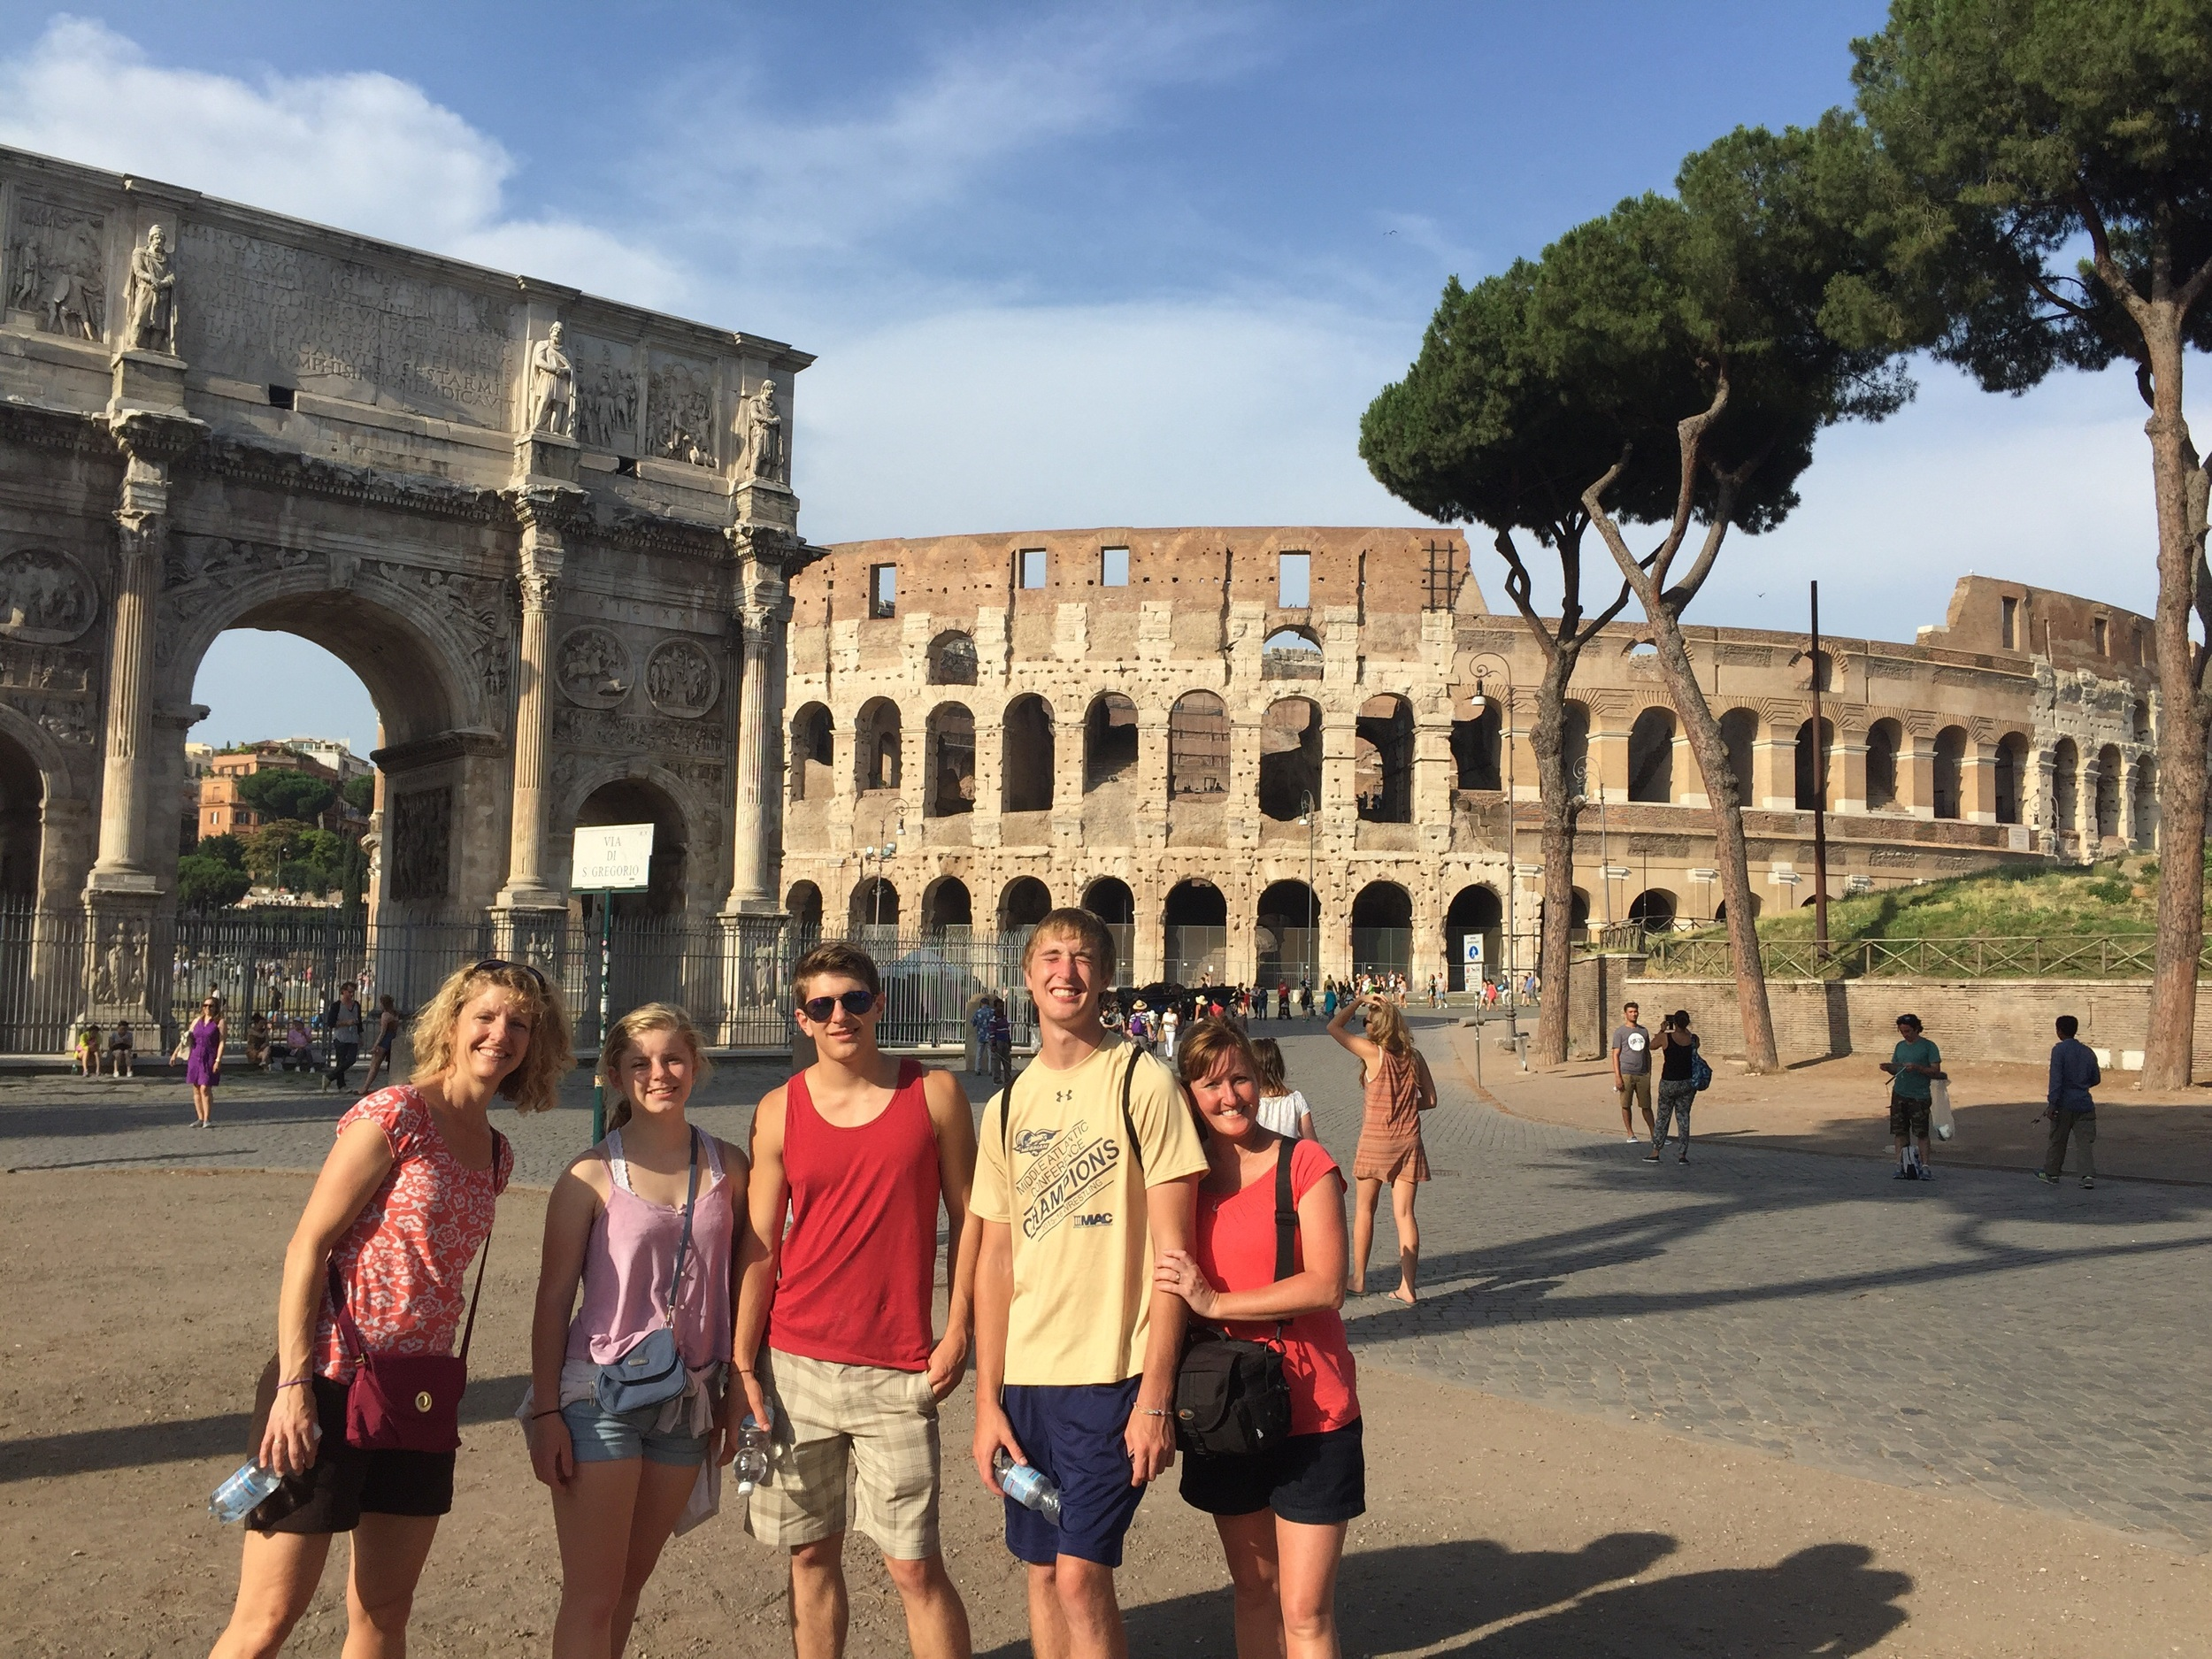 The family at Arch of Titus